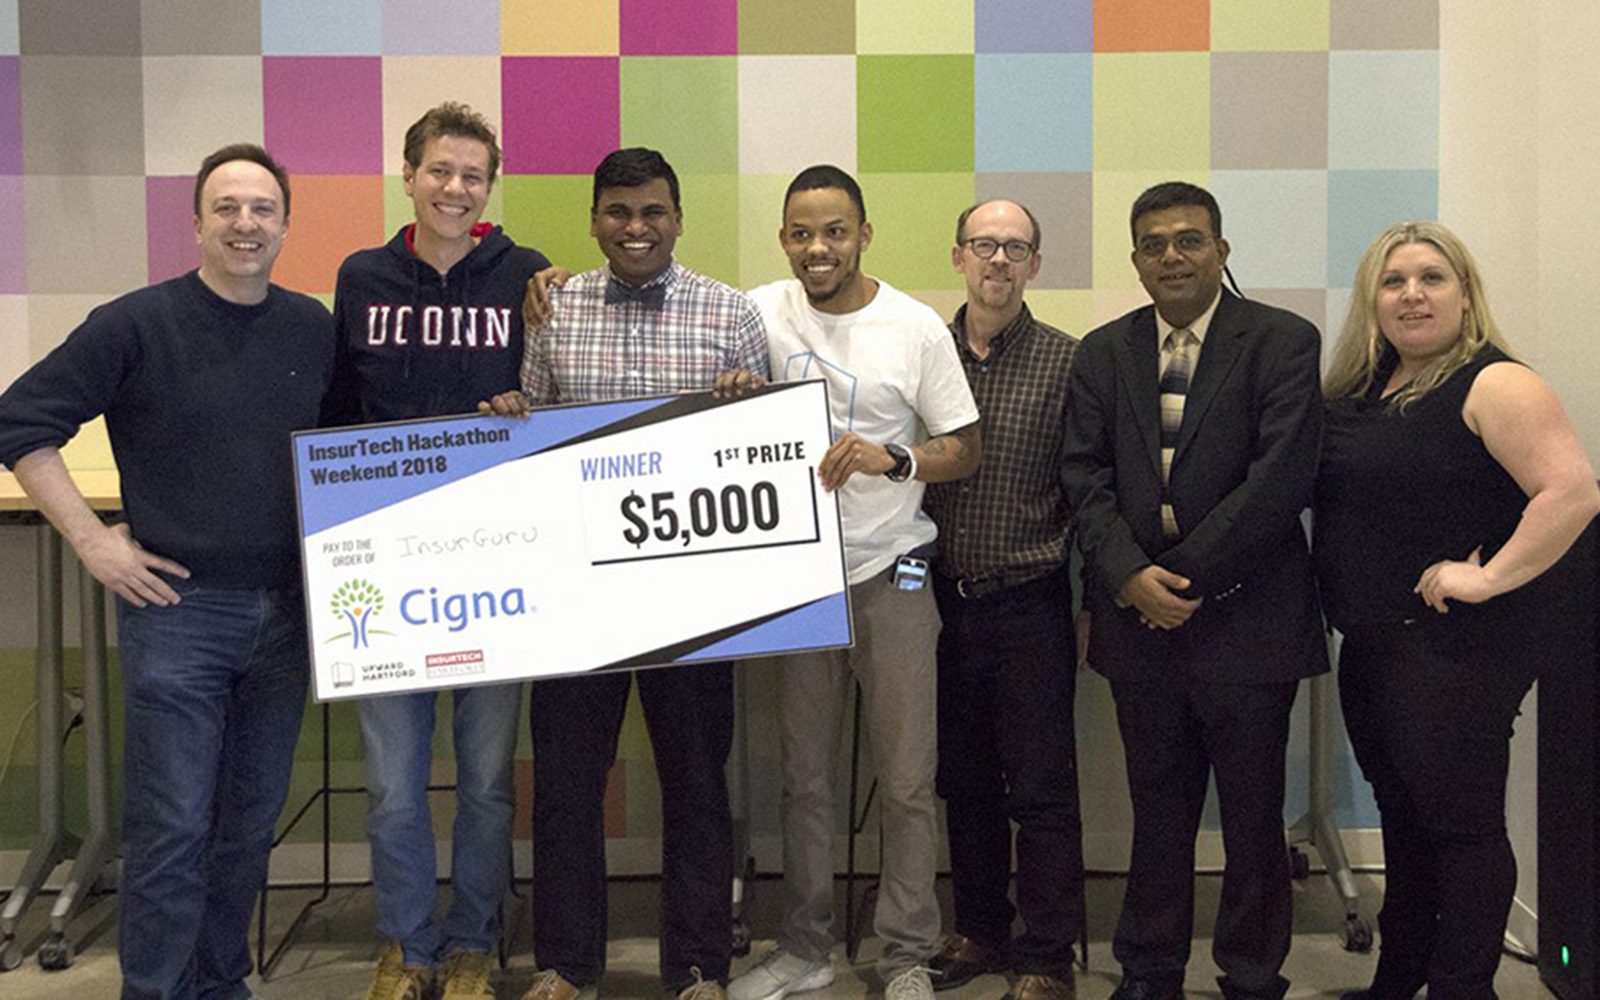 MSBAPM student Jack Caspi and his team who won First Prize in the InsurTech Digital Health Hackathon. (UConn photo)